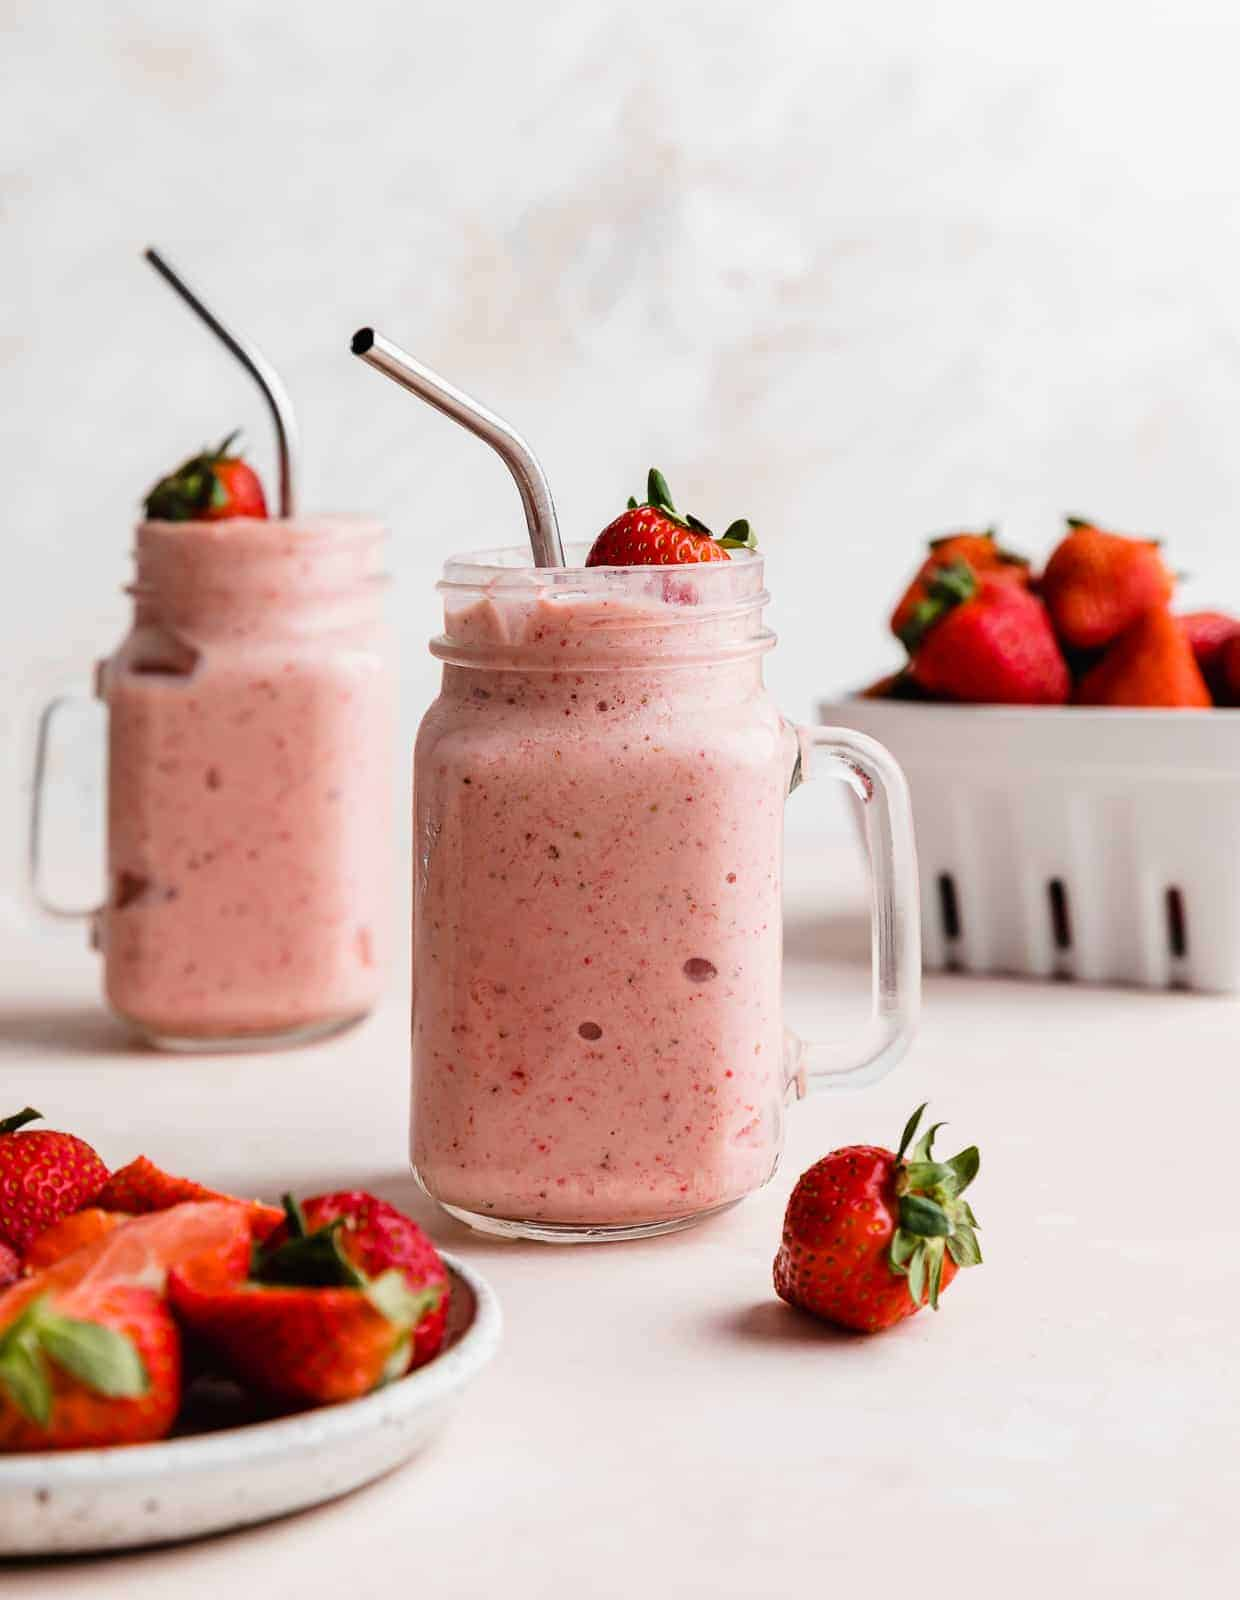 A pink Strawberry Pineapple Smoothie in a mason glass jar with a metal straw, against a white background with a basket of strawberries near the smoothie.